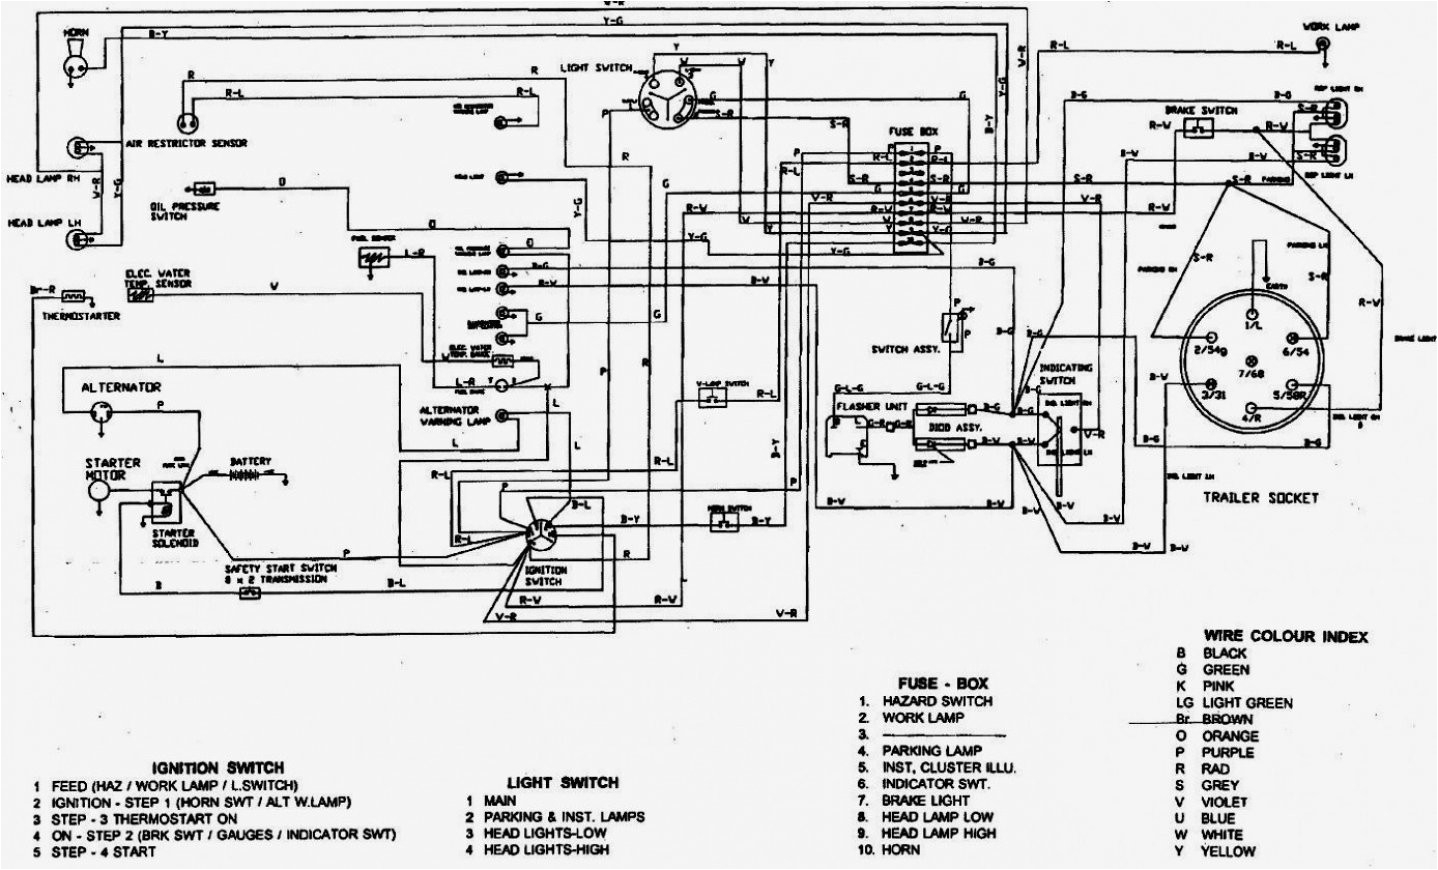 john deere 318 wiring diagram eyelash menew lt155 wiring diagram john deere 345 kawasaki diagrams data